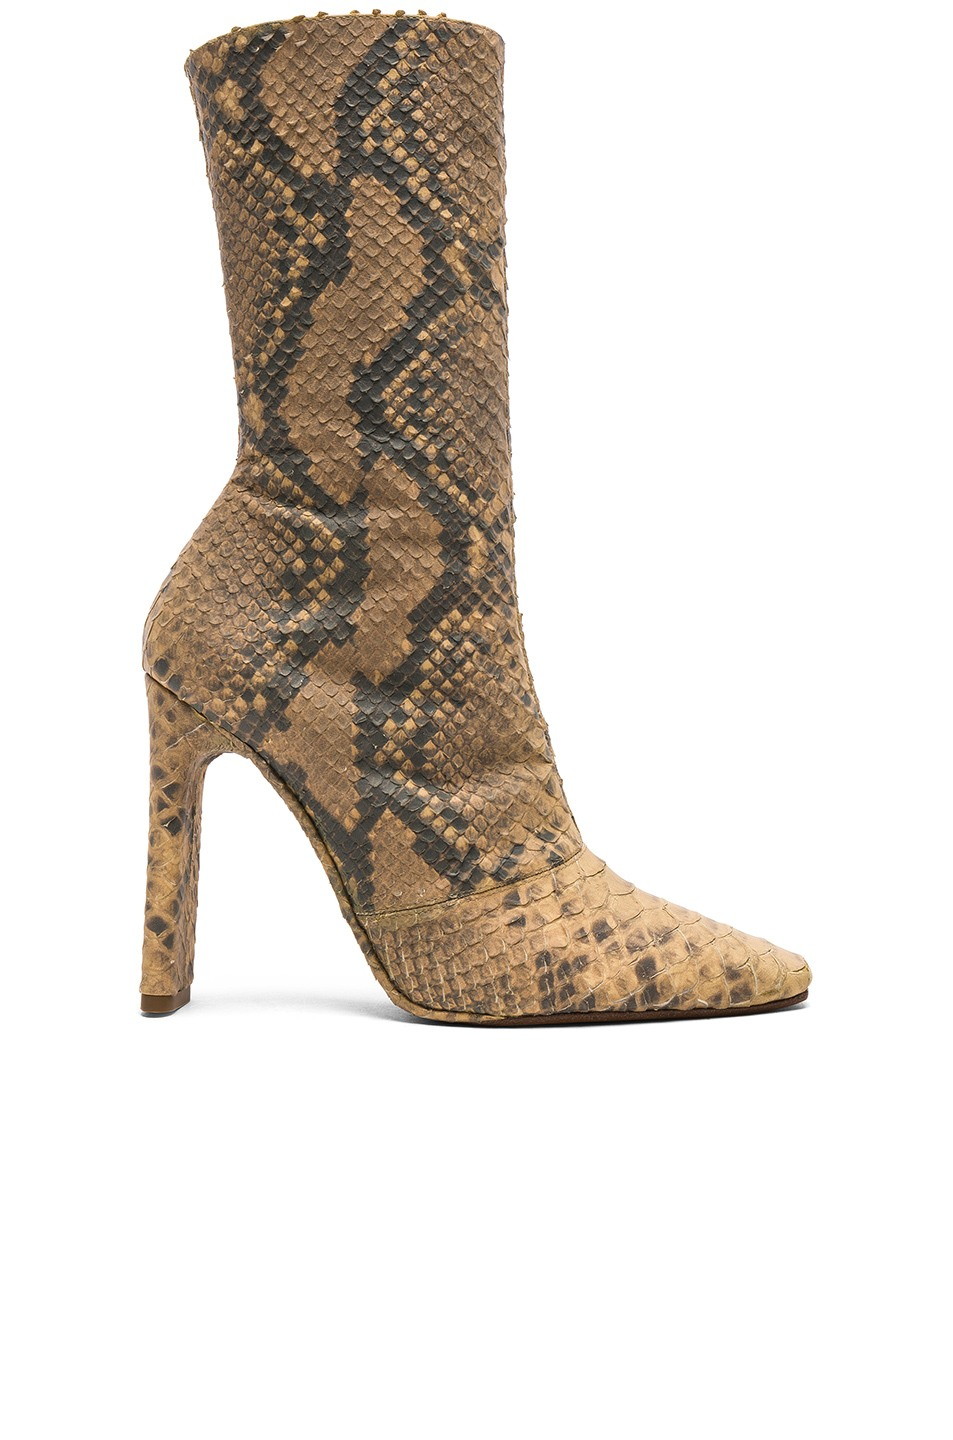 Season 6 Ankle Boots in Python Dark by Yeezy, available on fwrd.com Kim Kardashian Shoes Exact Product